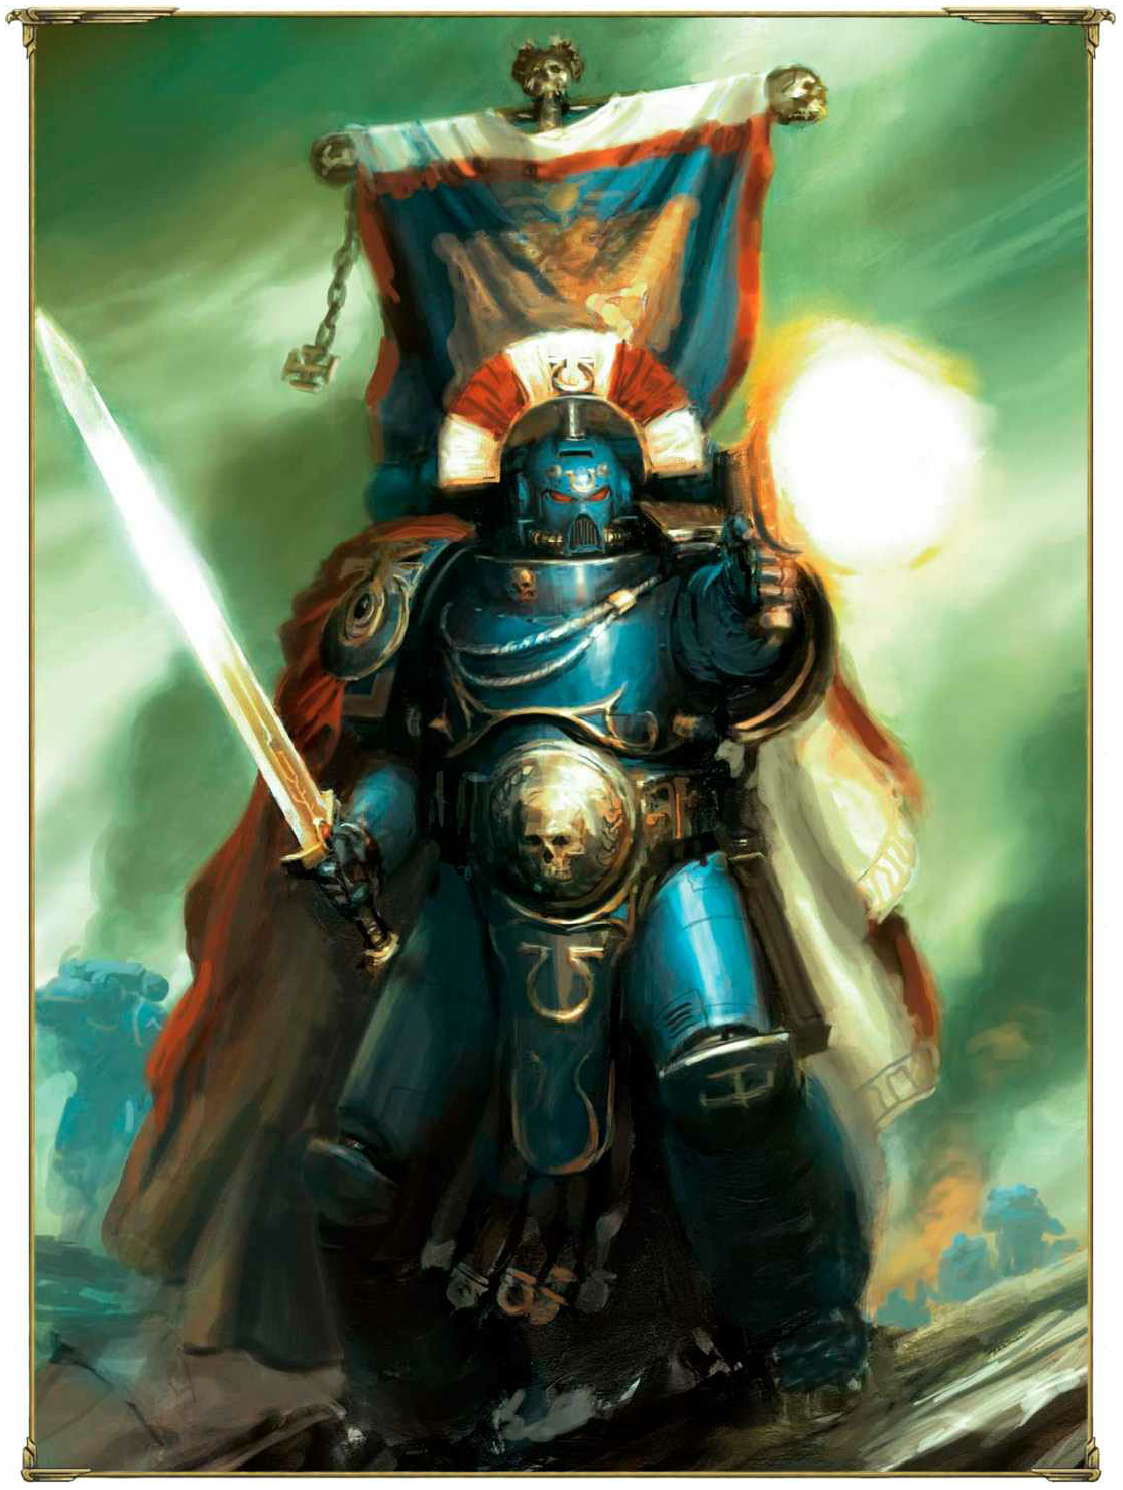 http://vignette2.wikia.nocookie.net/warhammer40k/images/5/51/2nd_Co._Cpt._Sicarius.png/revision/latest?cb=20130914023502